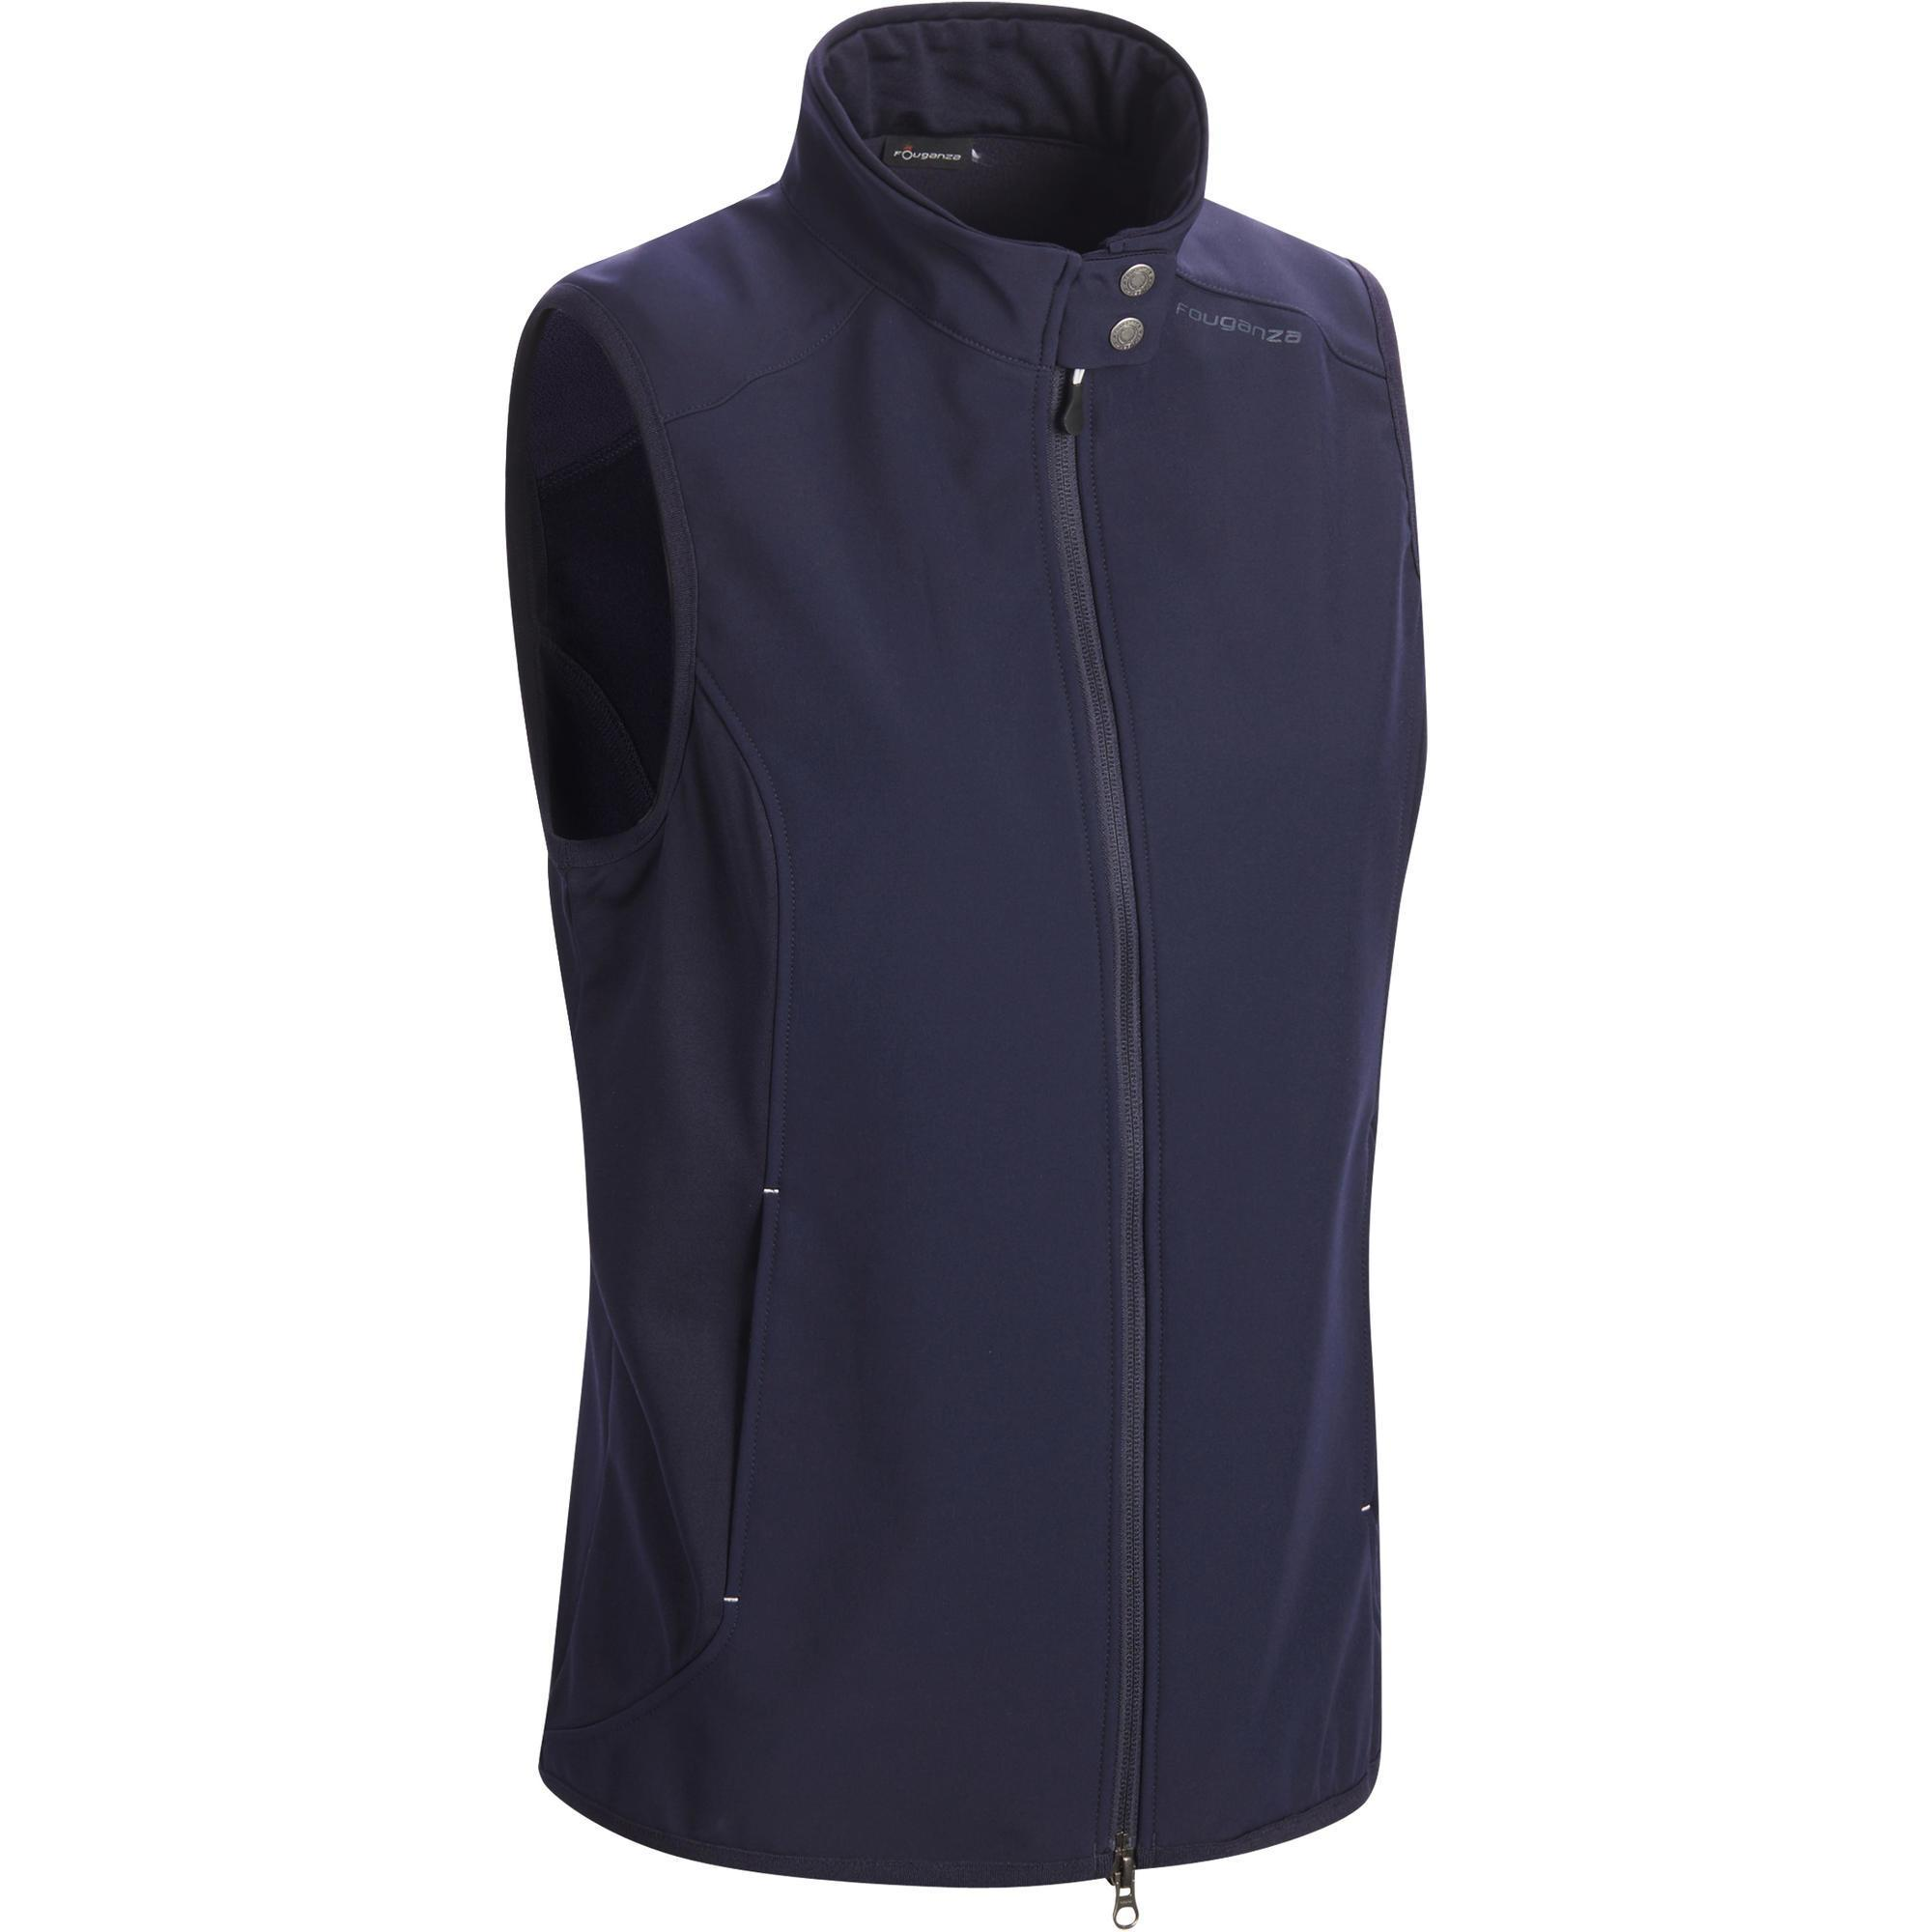 Fouganza Bodywarmer 500 dames ruitersport marineblauw